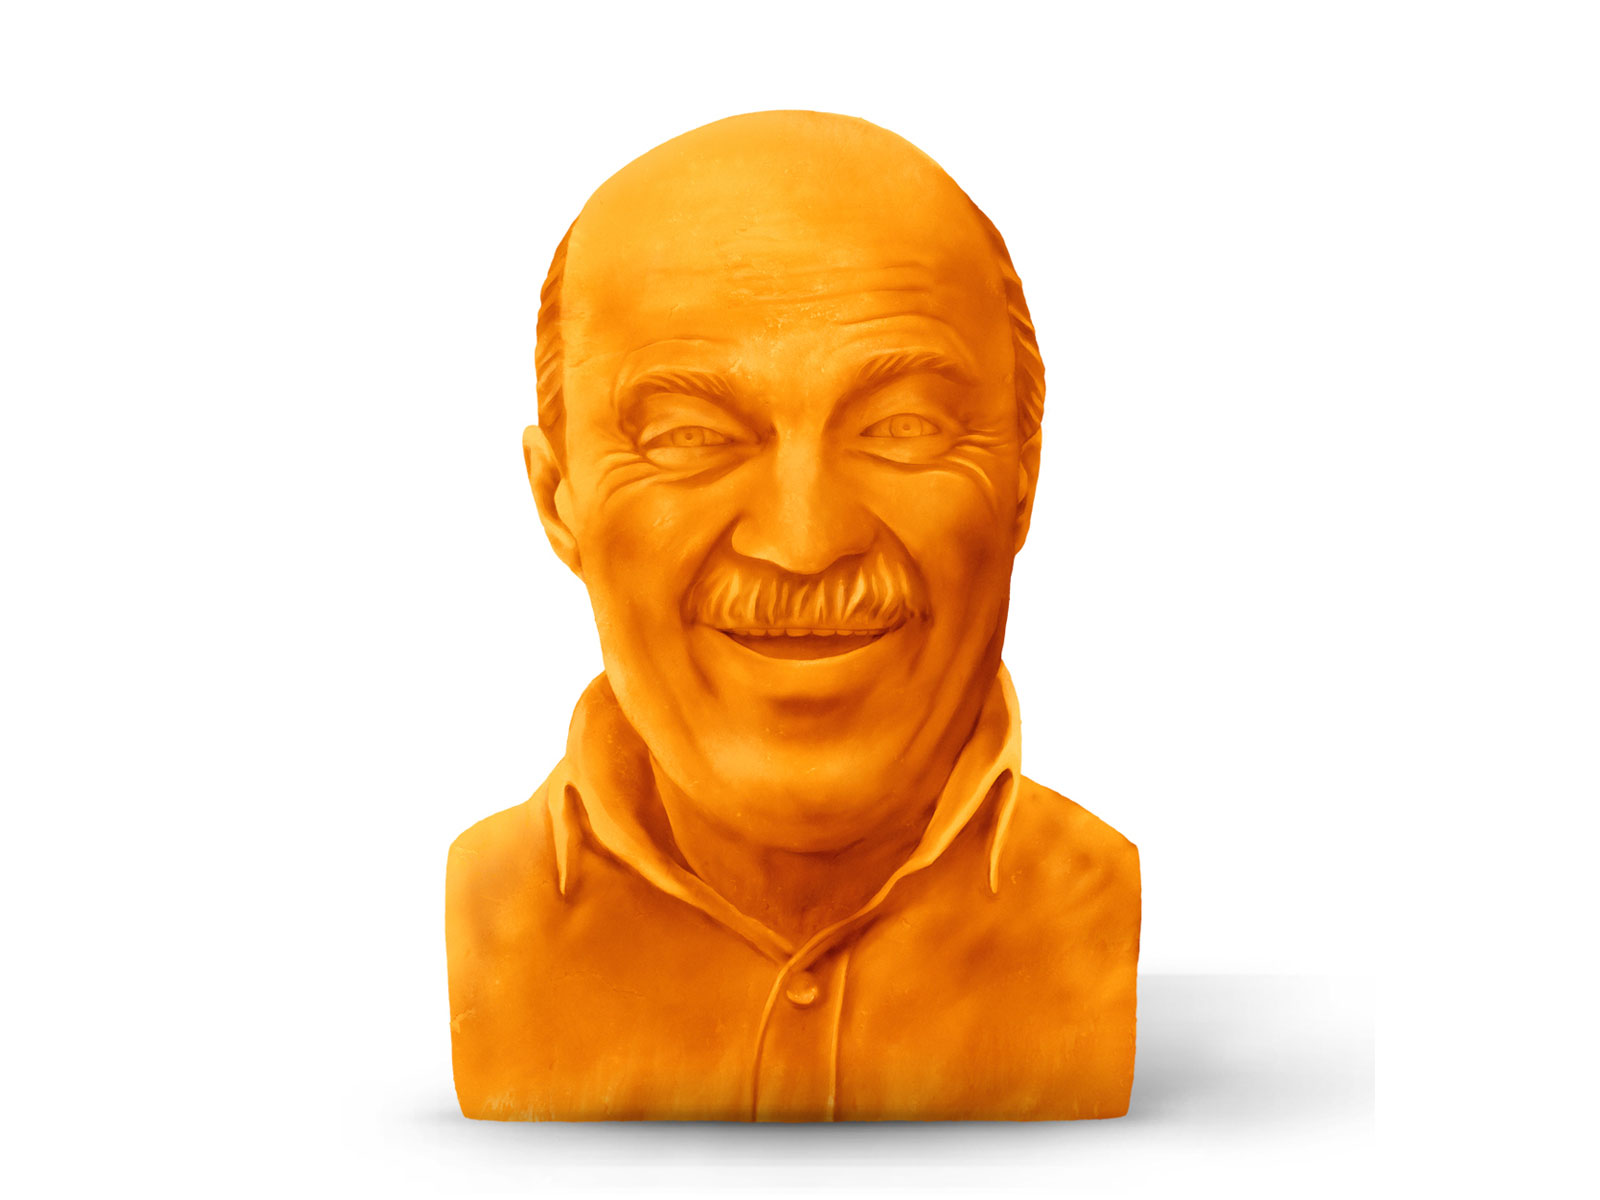 Kraft Cheese Sculpture